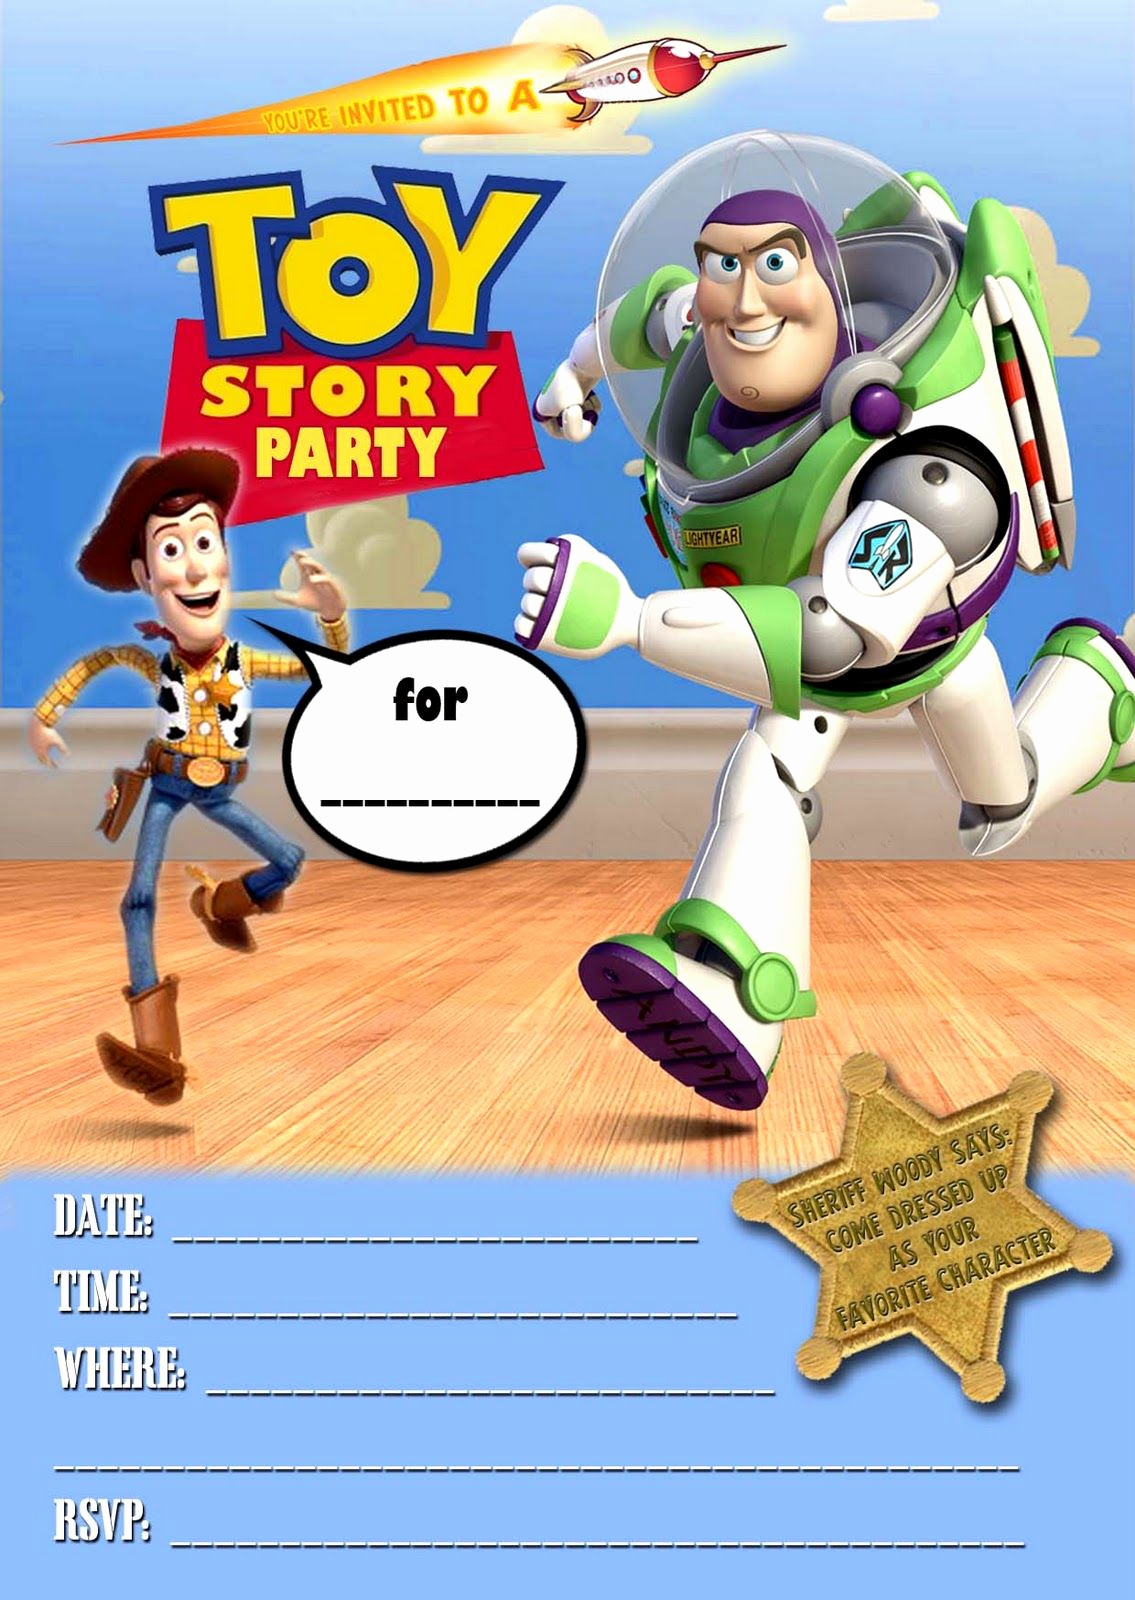 Toy Story Invitation Template Luxury Free Kids Party Invitations toy Story Party Invitation